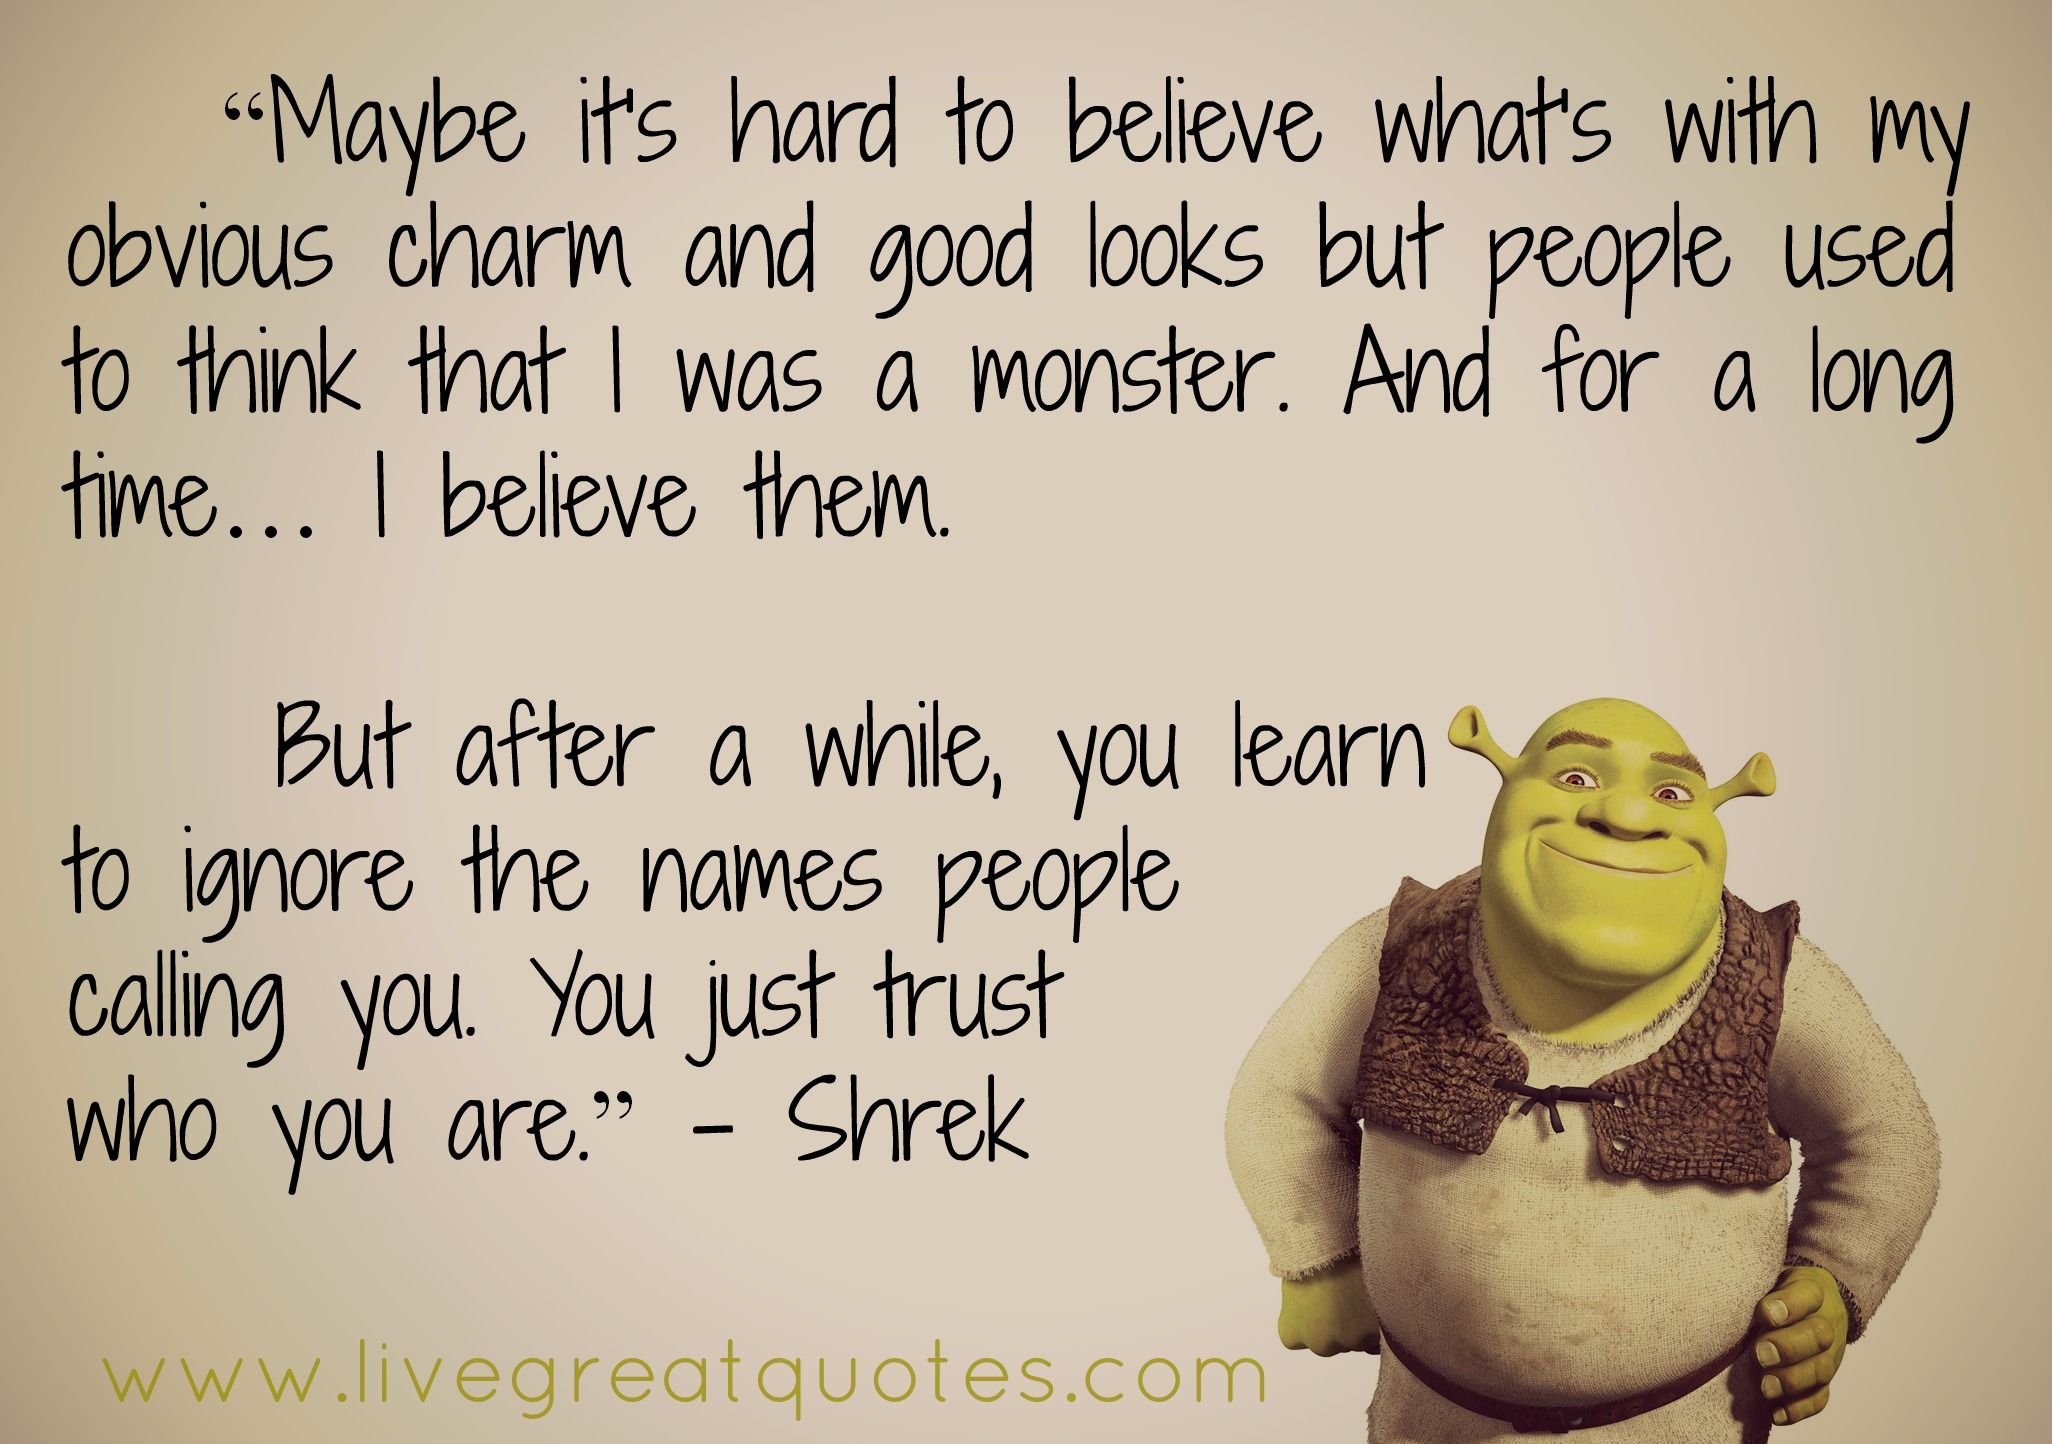 Funny Quotes About Cruise Ships Quotesgram: Funny Shrek Quotes. QuotesGram